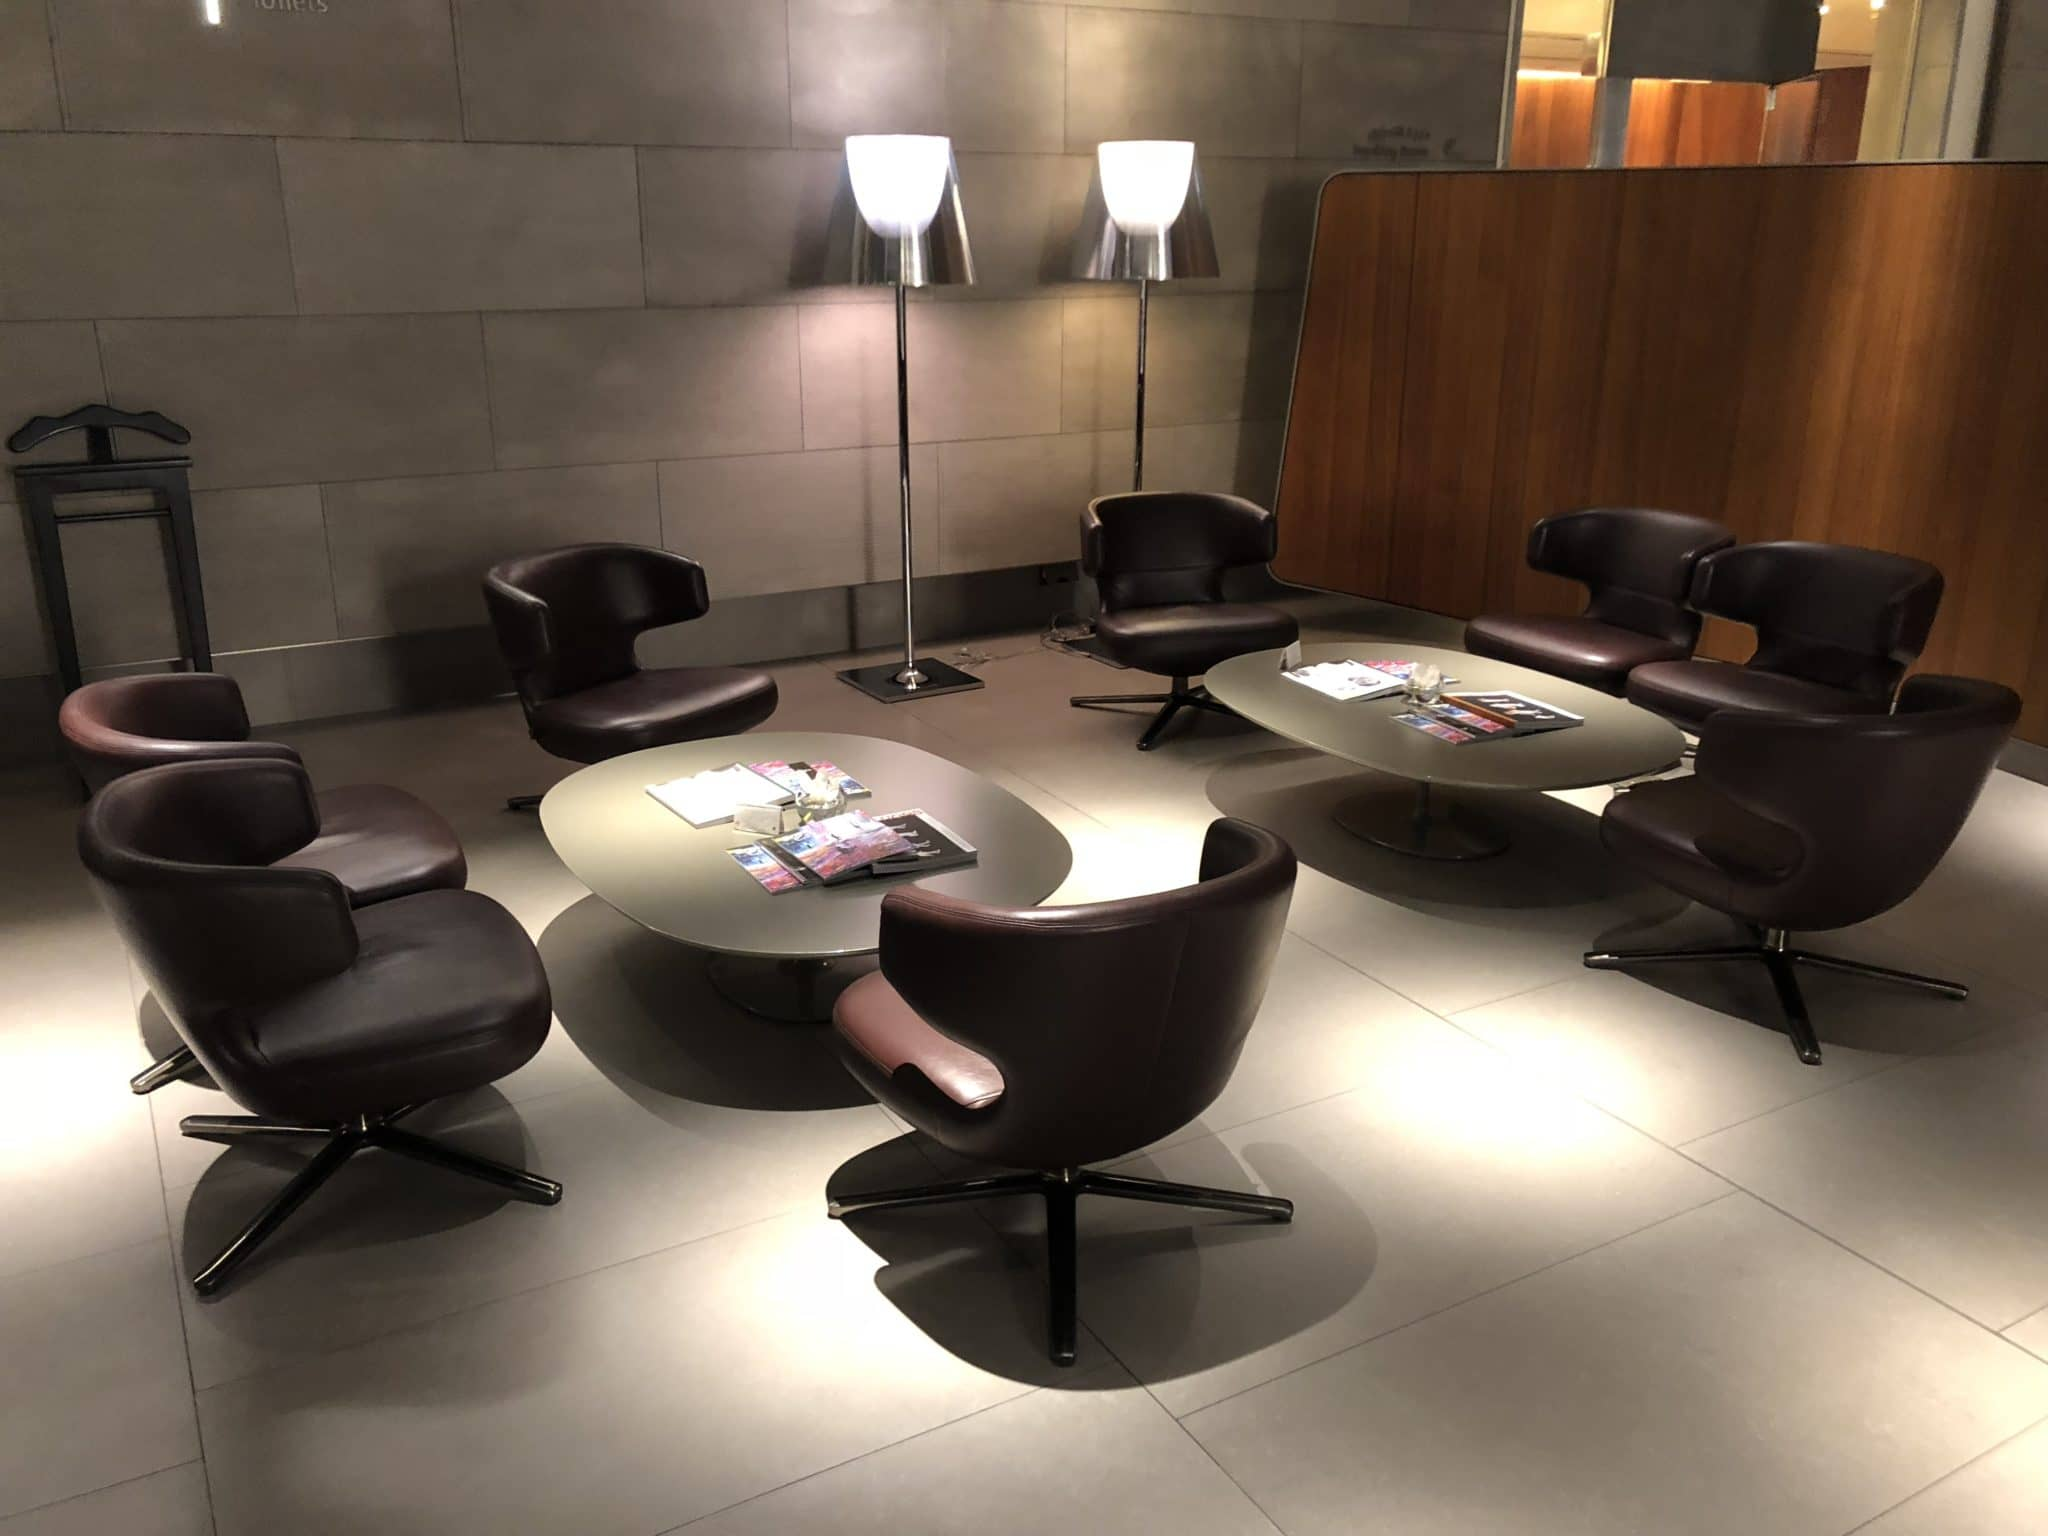 Qatar Airways Al Mourjan Business Class Lounge Sitzoption Gruppe